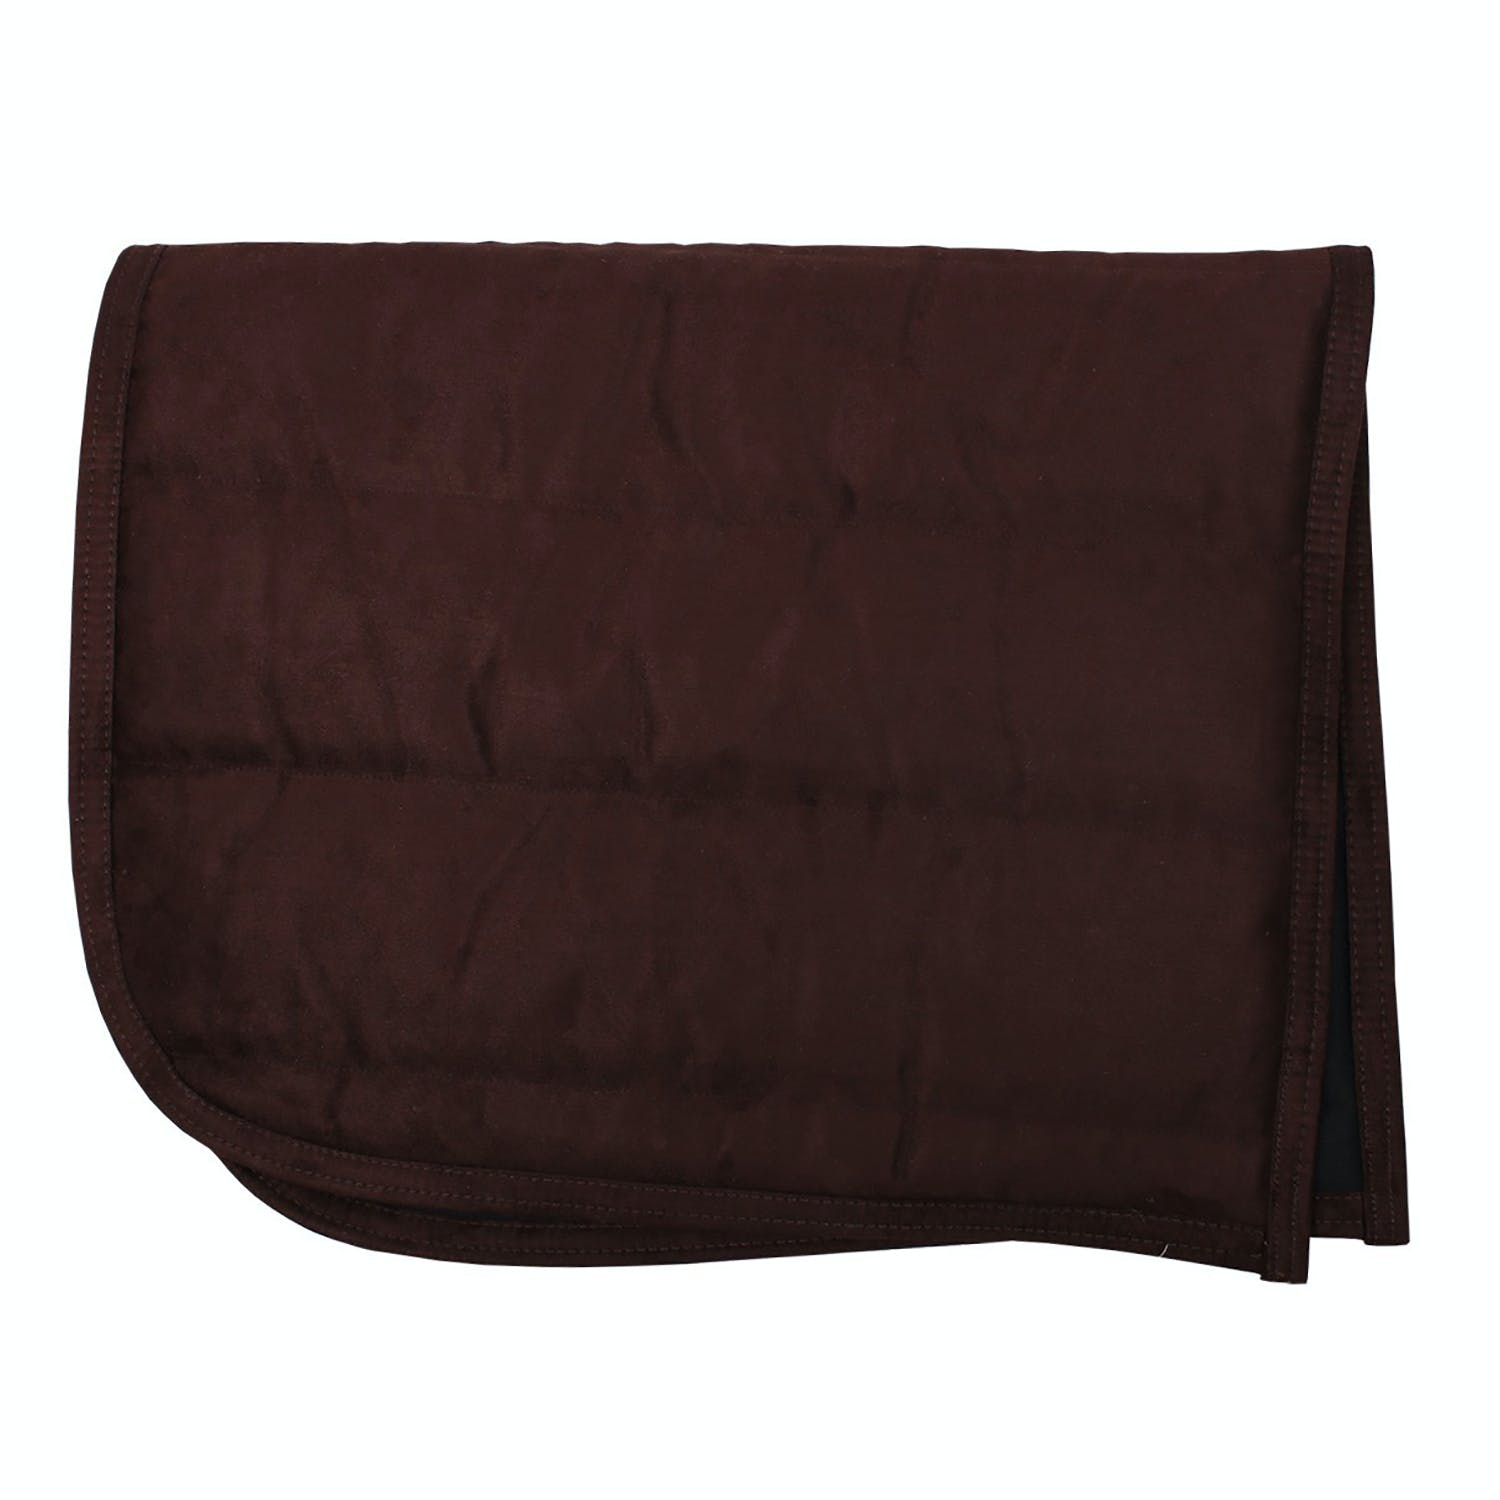 Qhp Puff Saddle Pad From Rideaway